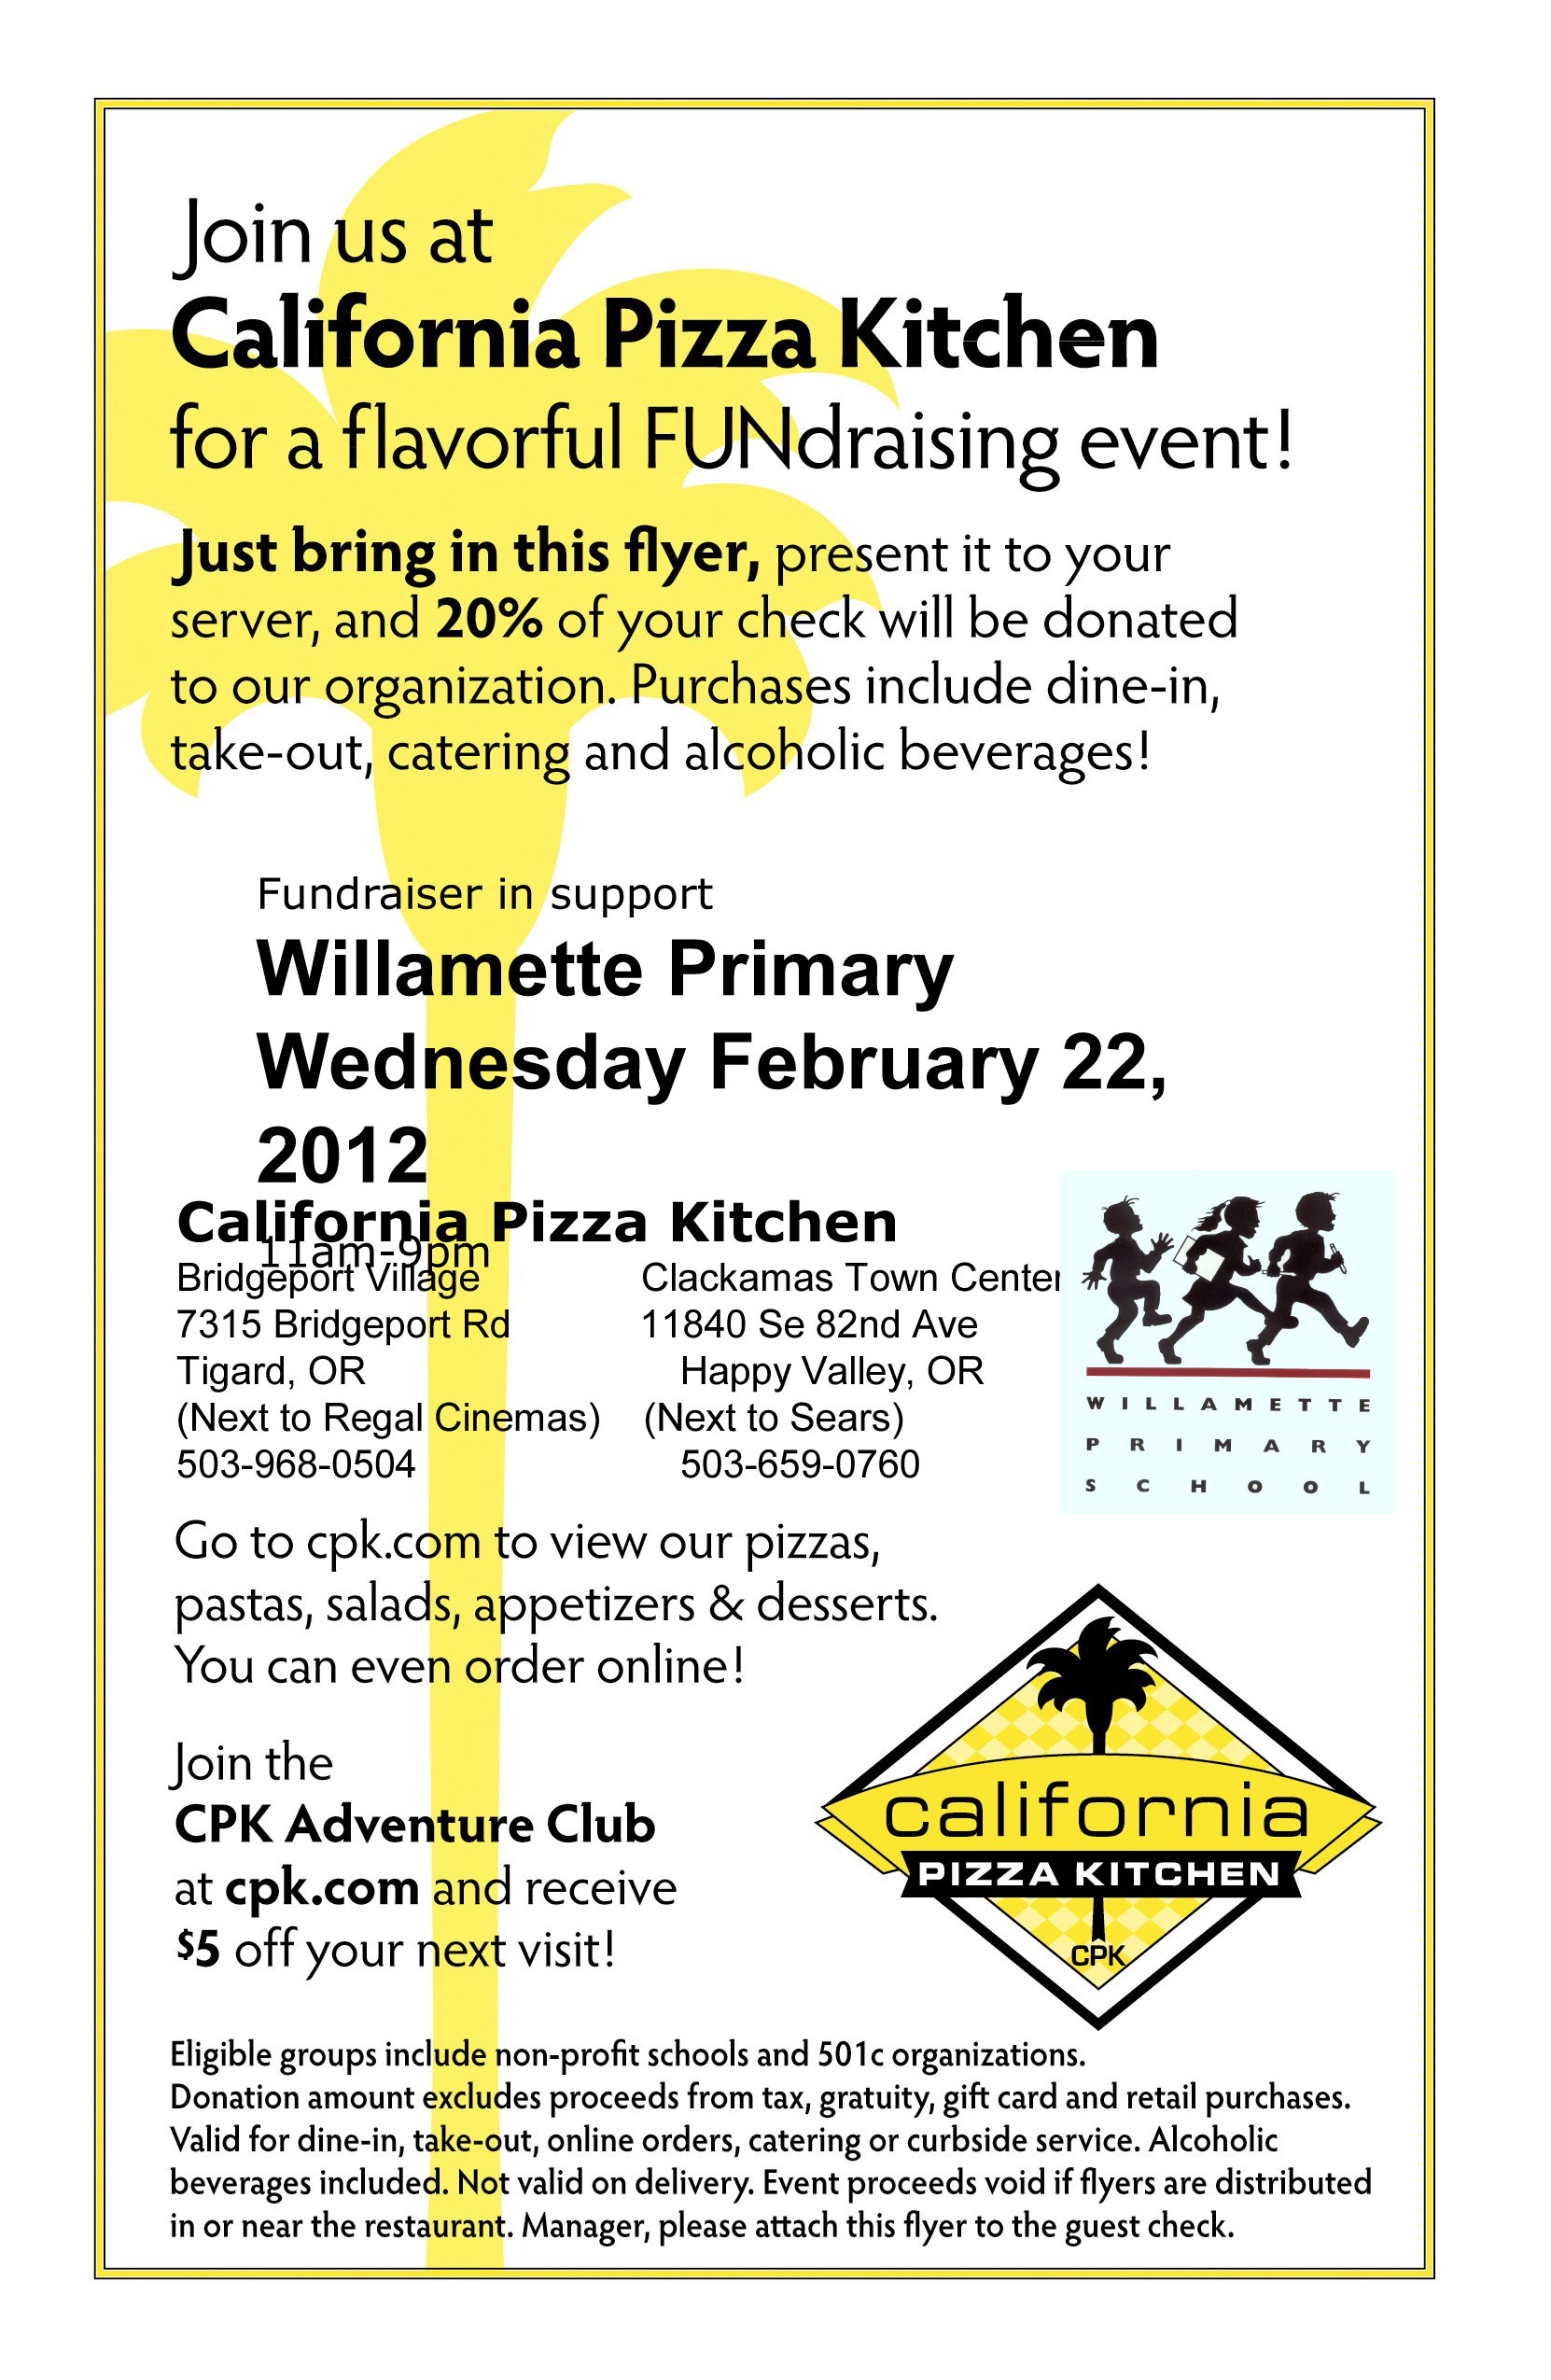 California pizza kitchen organizational structure Custom paper ...